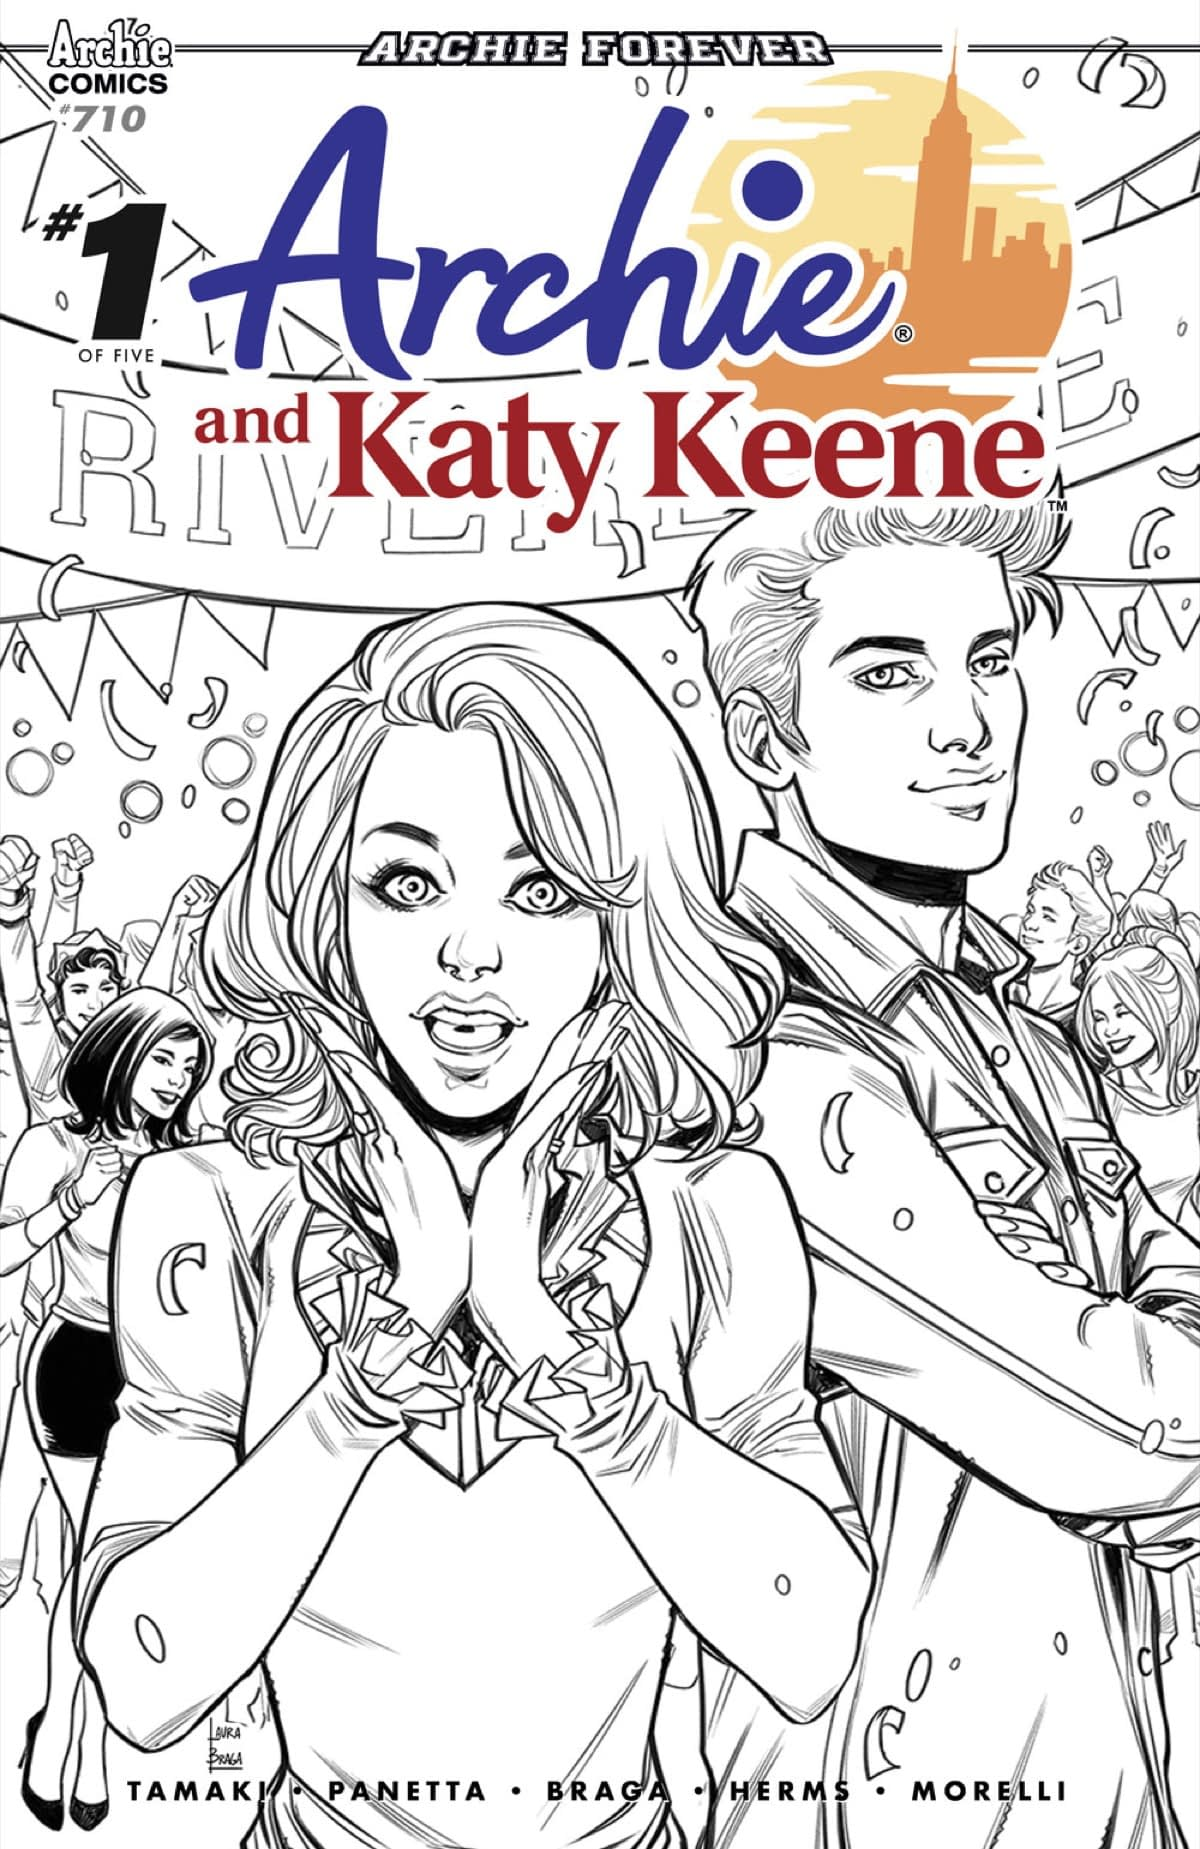 Archie to Relaunch as Archie and Katy Keene as Titular Gigolo Gets New Love Interest